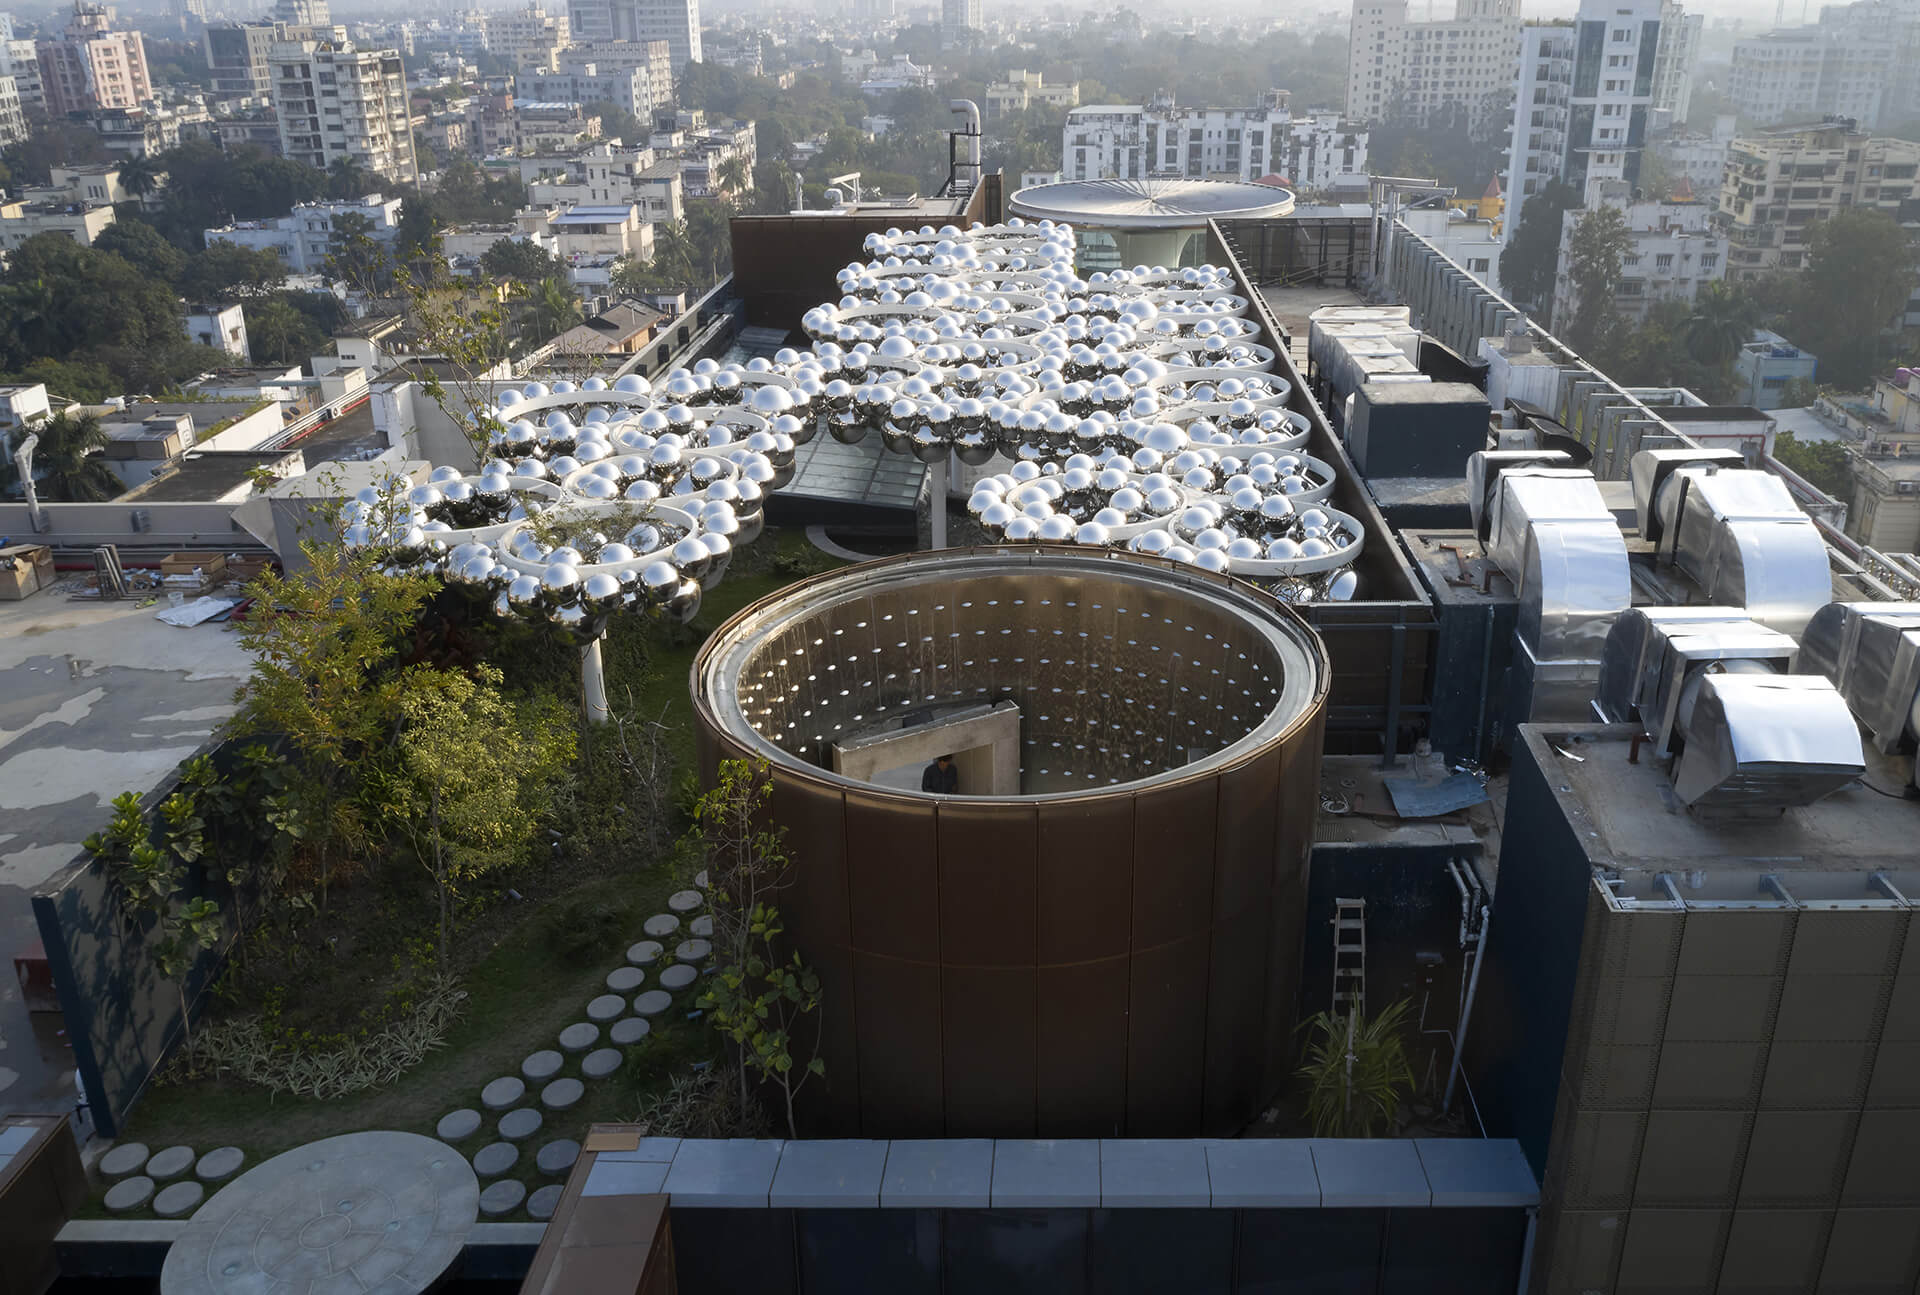 The terrace for RP-Sanjiv Goenka Group corporate office by Abin Design Studio is a 'space' for provocation to connect sky, light, water and nature | RP-Sanjiv Goenka Group corporate office by Abin Design Studio | STIRworld